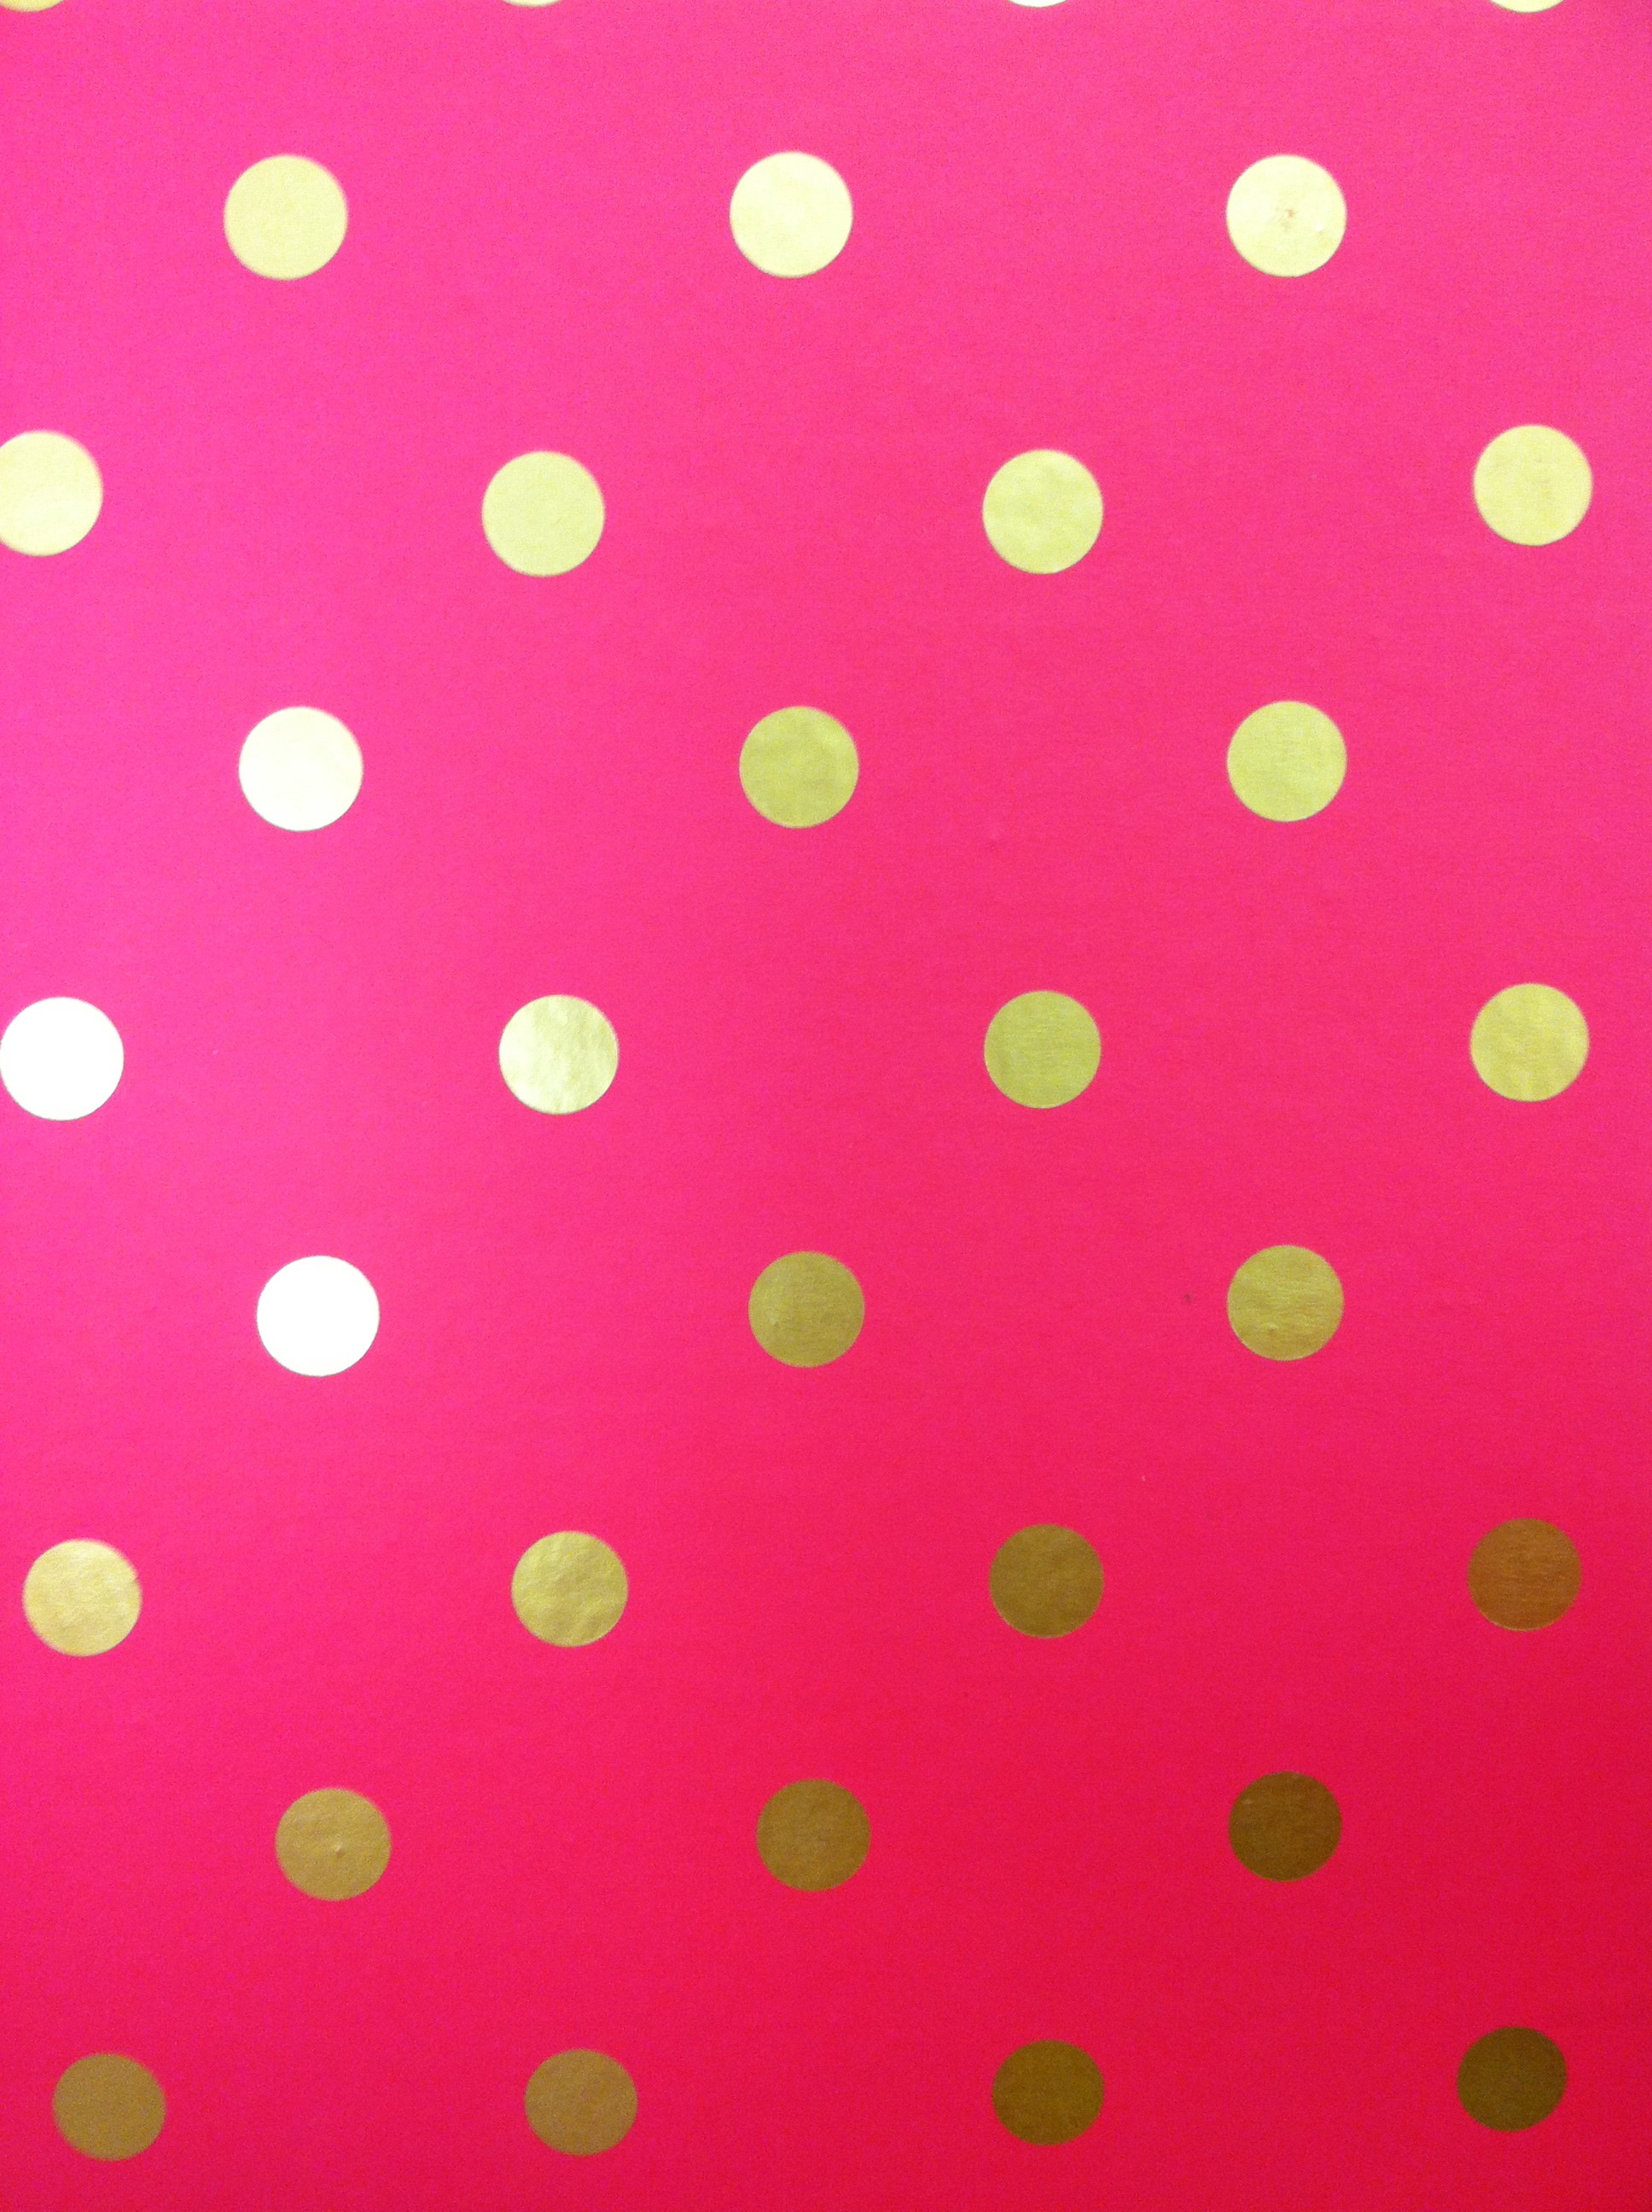 Gold Polka Dot Wallpaper 55 Images